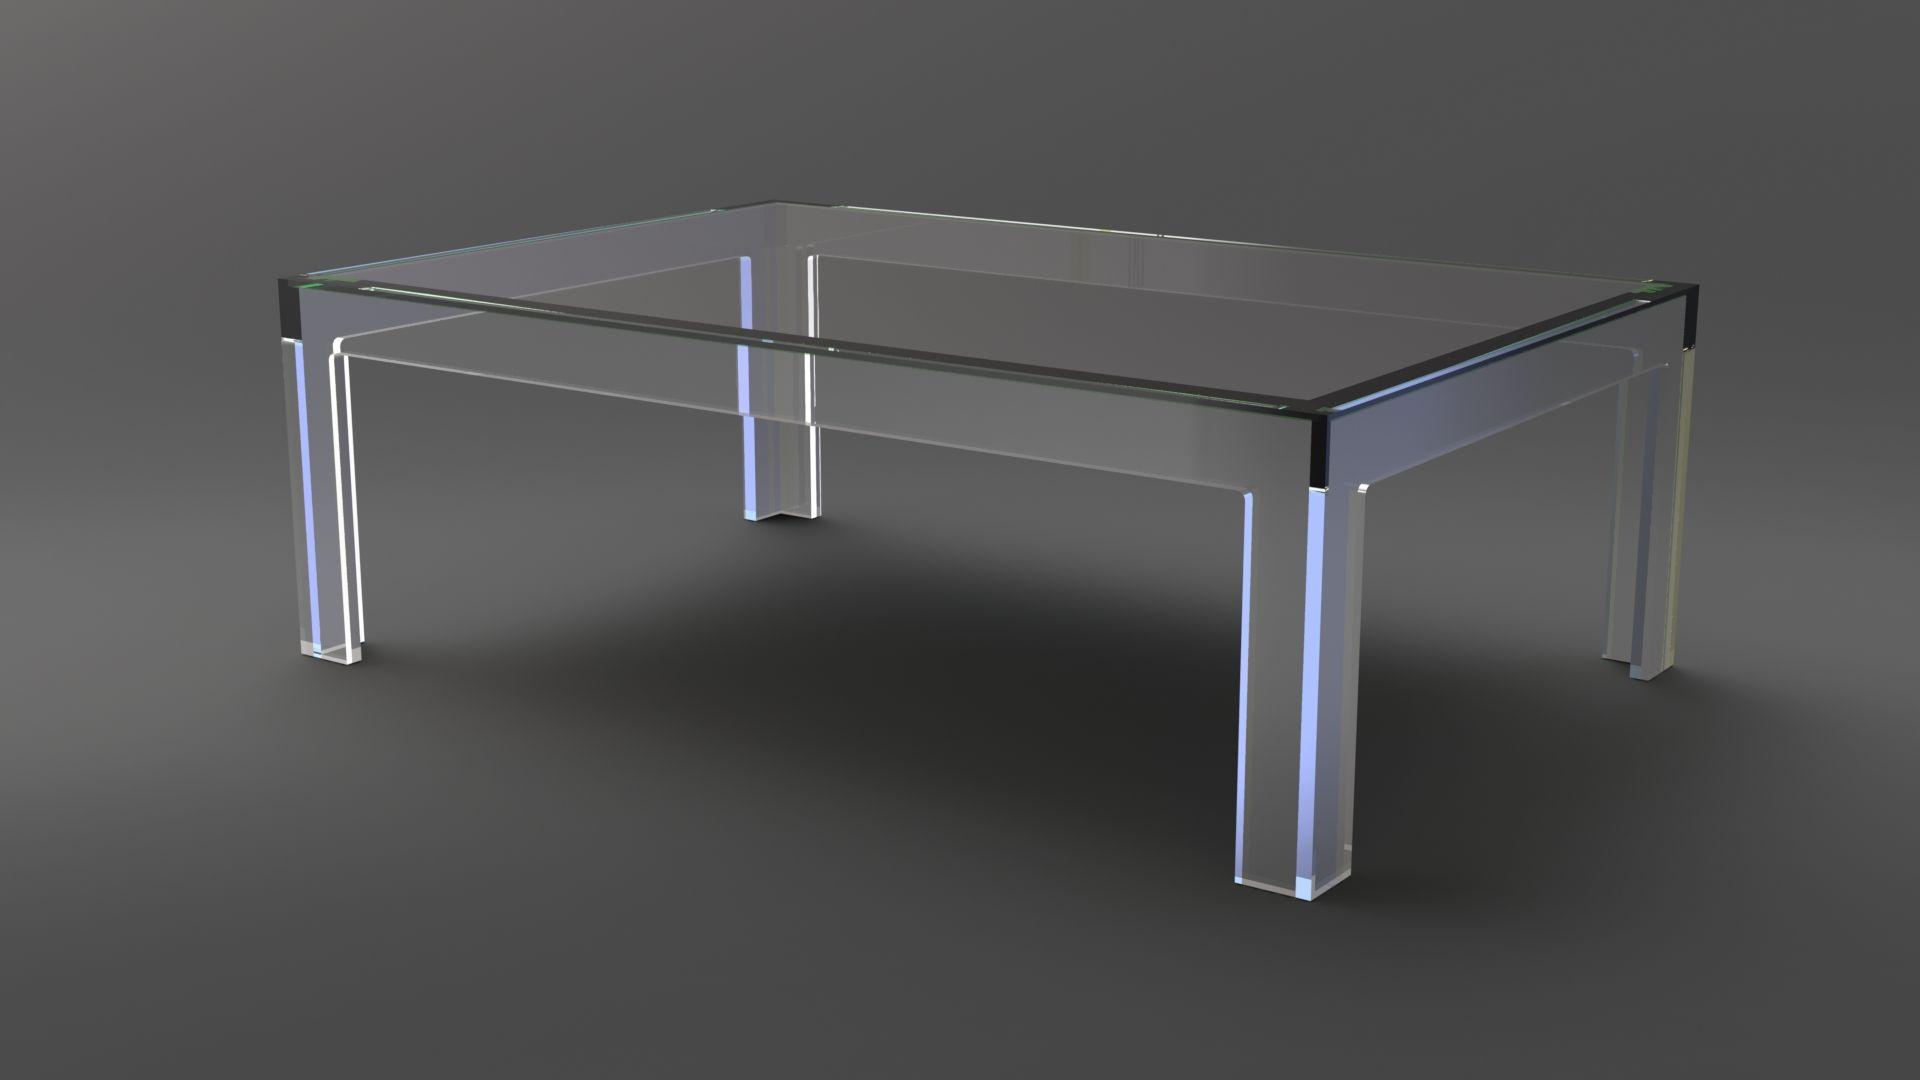 Studiocarew Com By Carewjones Maddox Coffee Table In 20mm Thick Acrylic With An Inset 10mm Thick Glass Top Coffee Table Acrylic Coffee Table Glass Furniture [ 1080 x 1920 Pixel ]